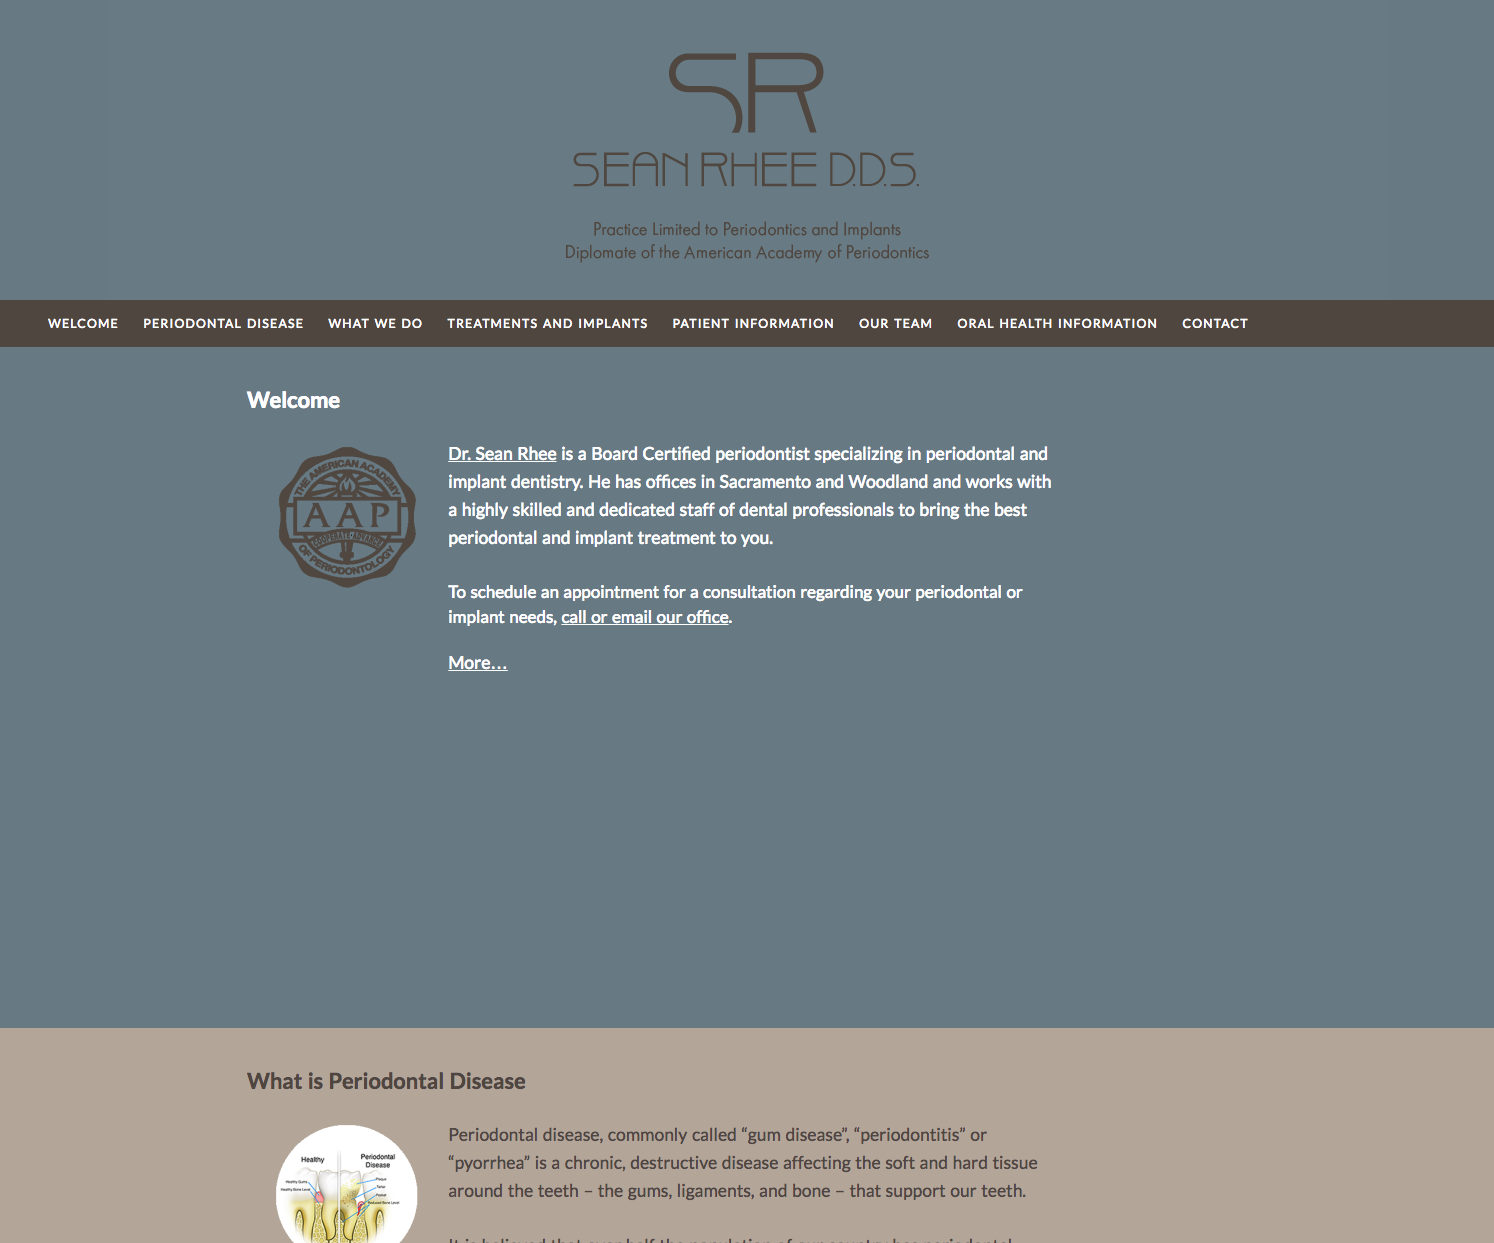 SR Periodontics and Implants Home Page Image